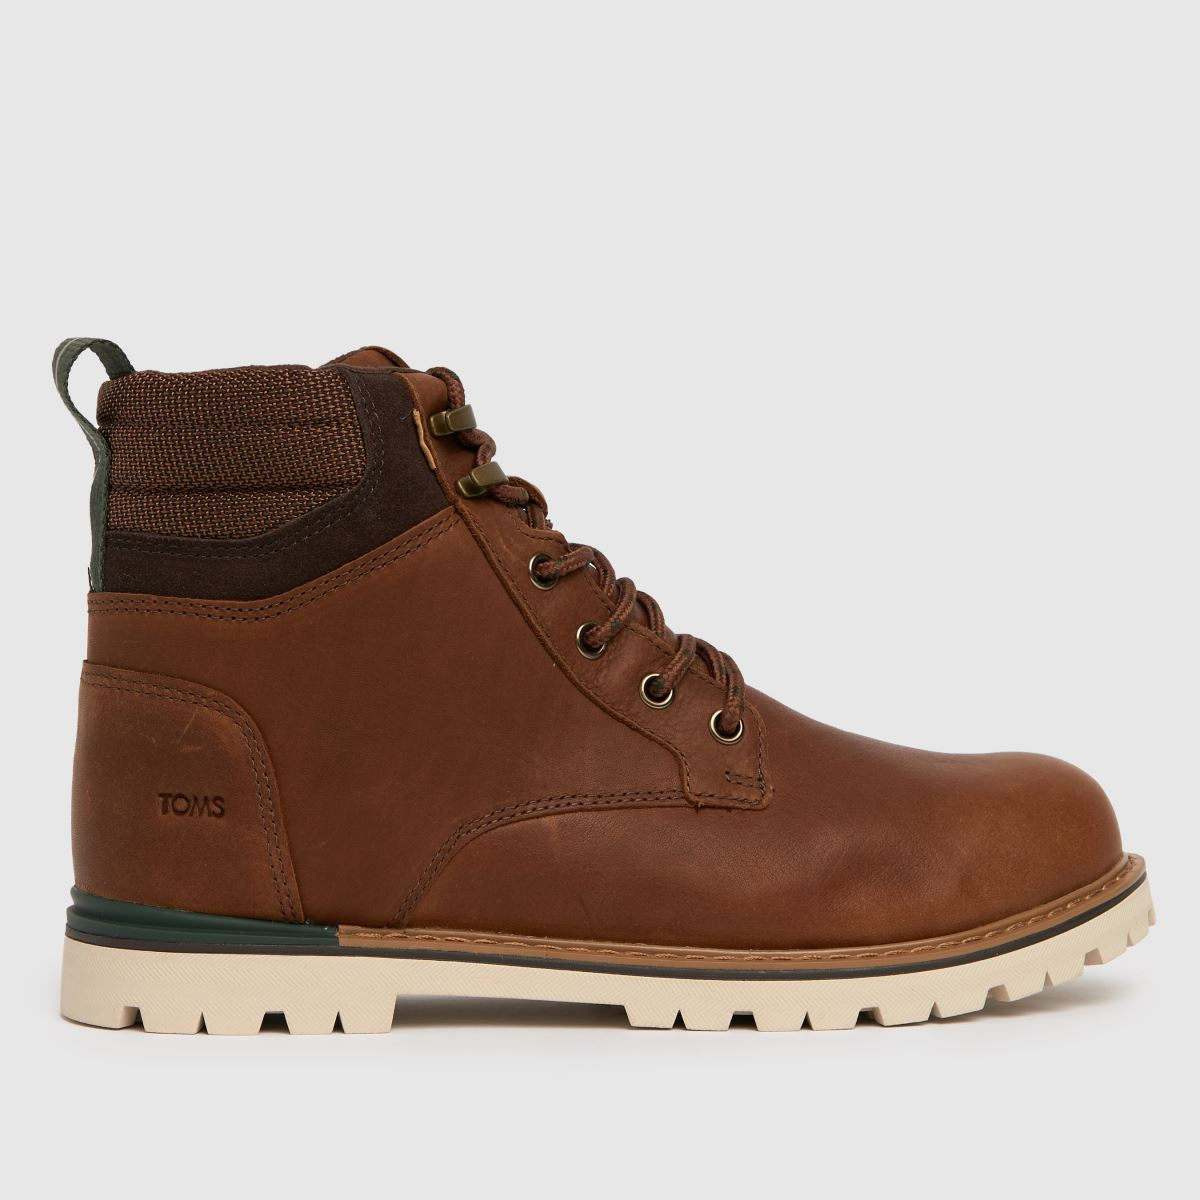 TOMS Brown Ashland Waterproof Boots